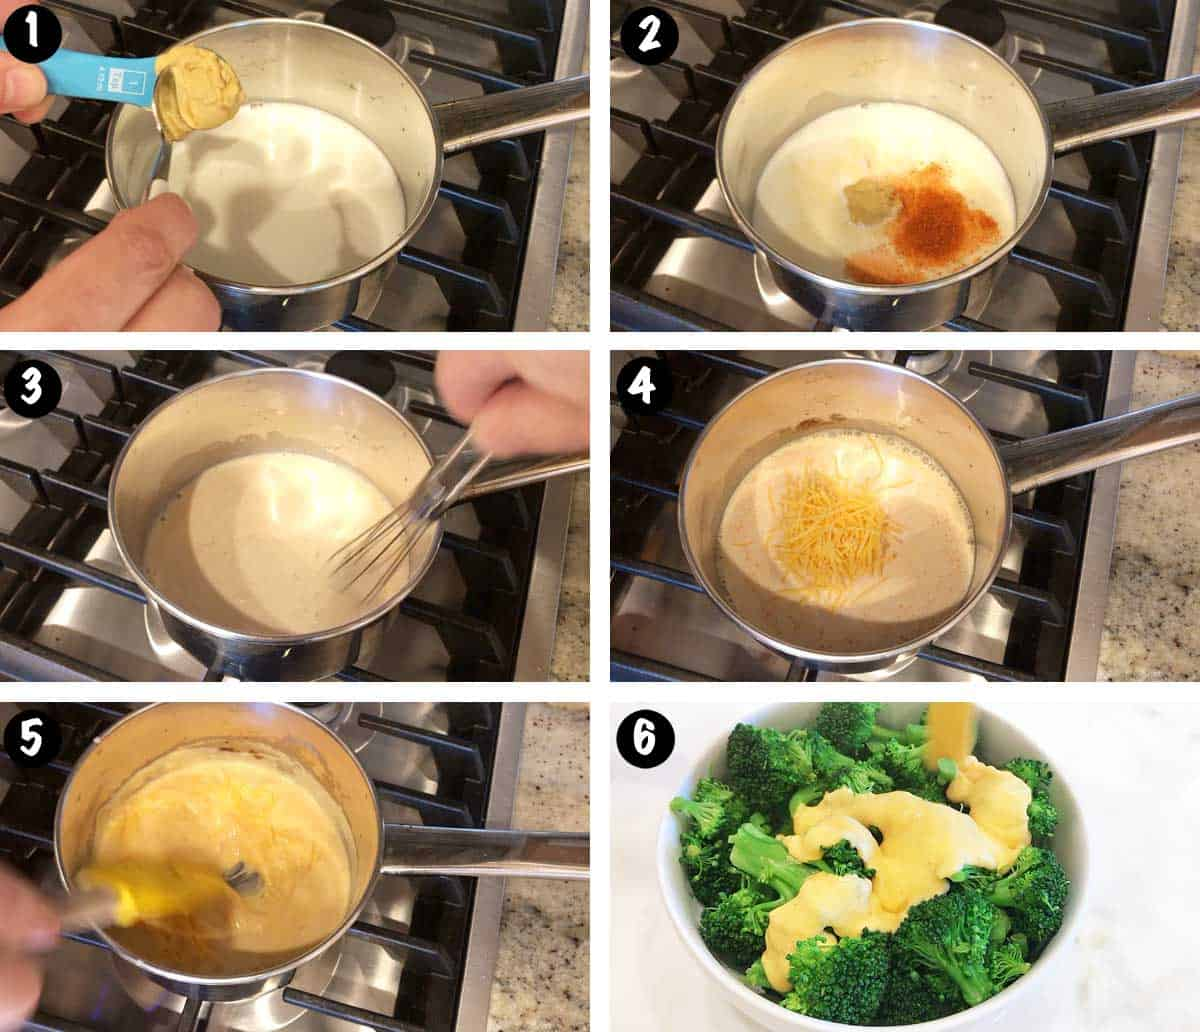 A photo collage showing the steps for making a cheese sauce for broccoli.